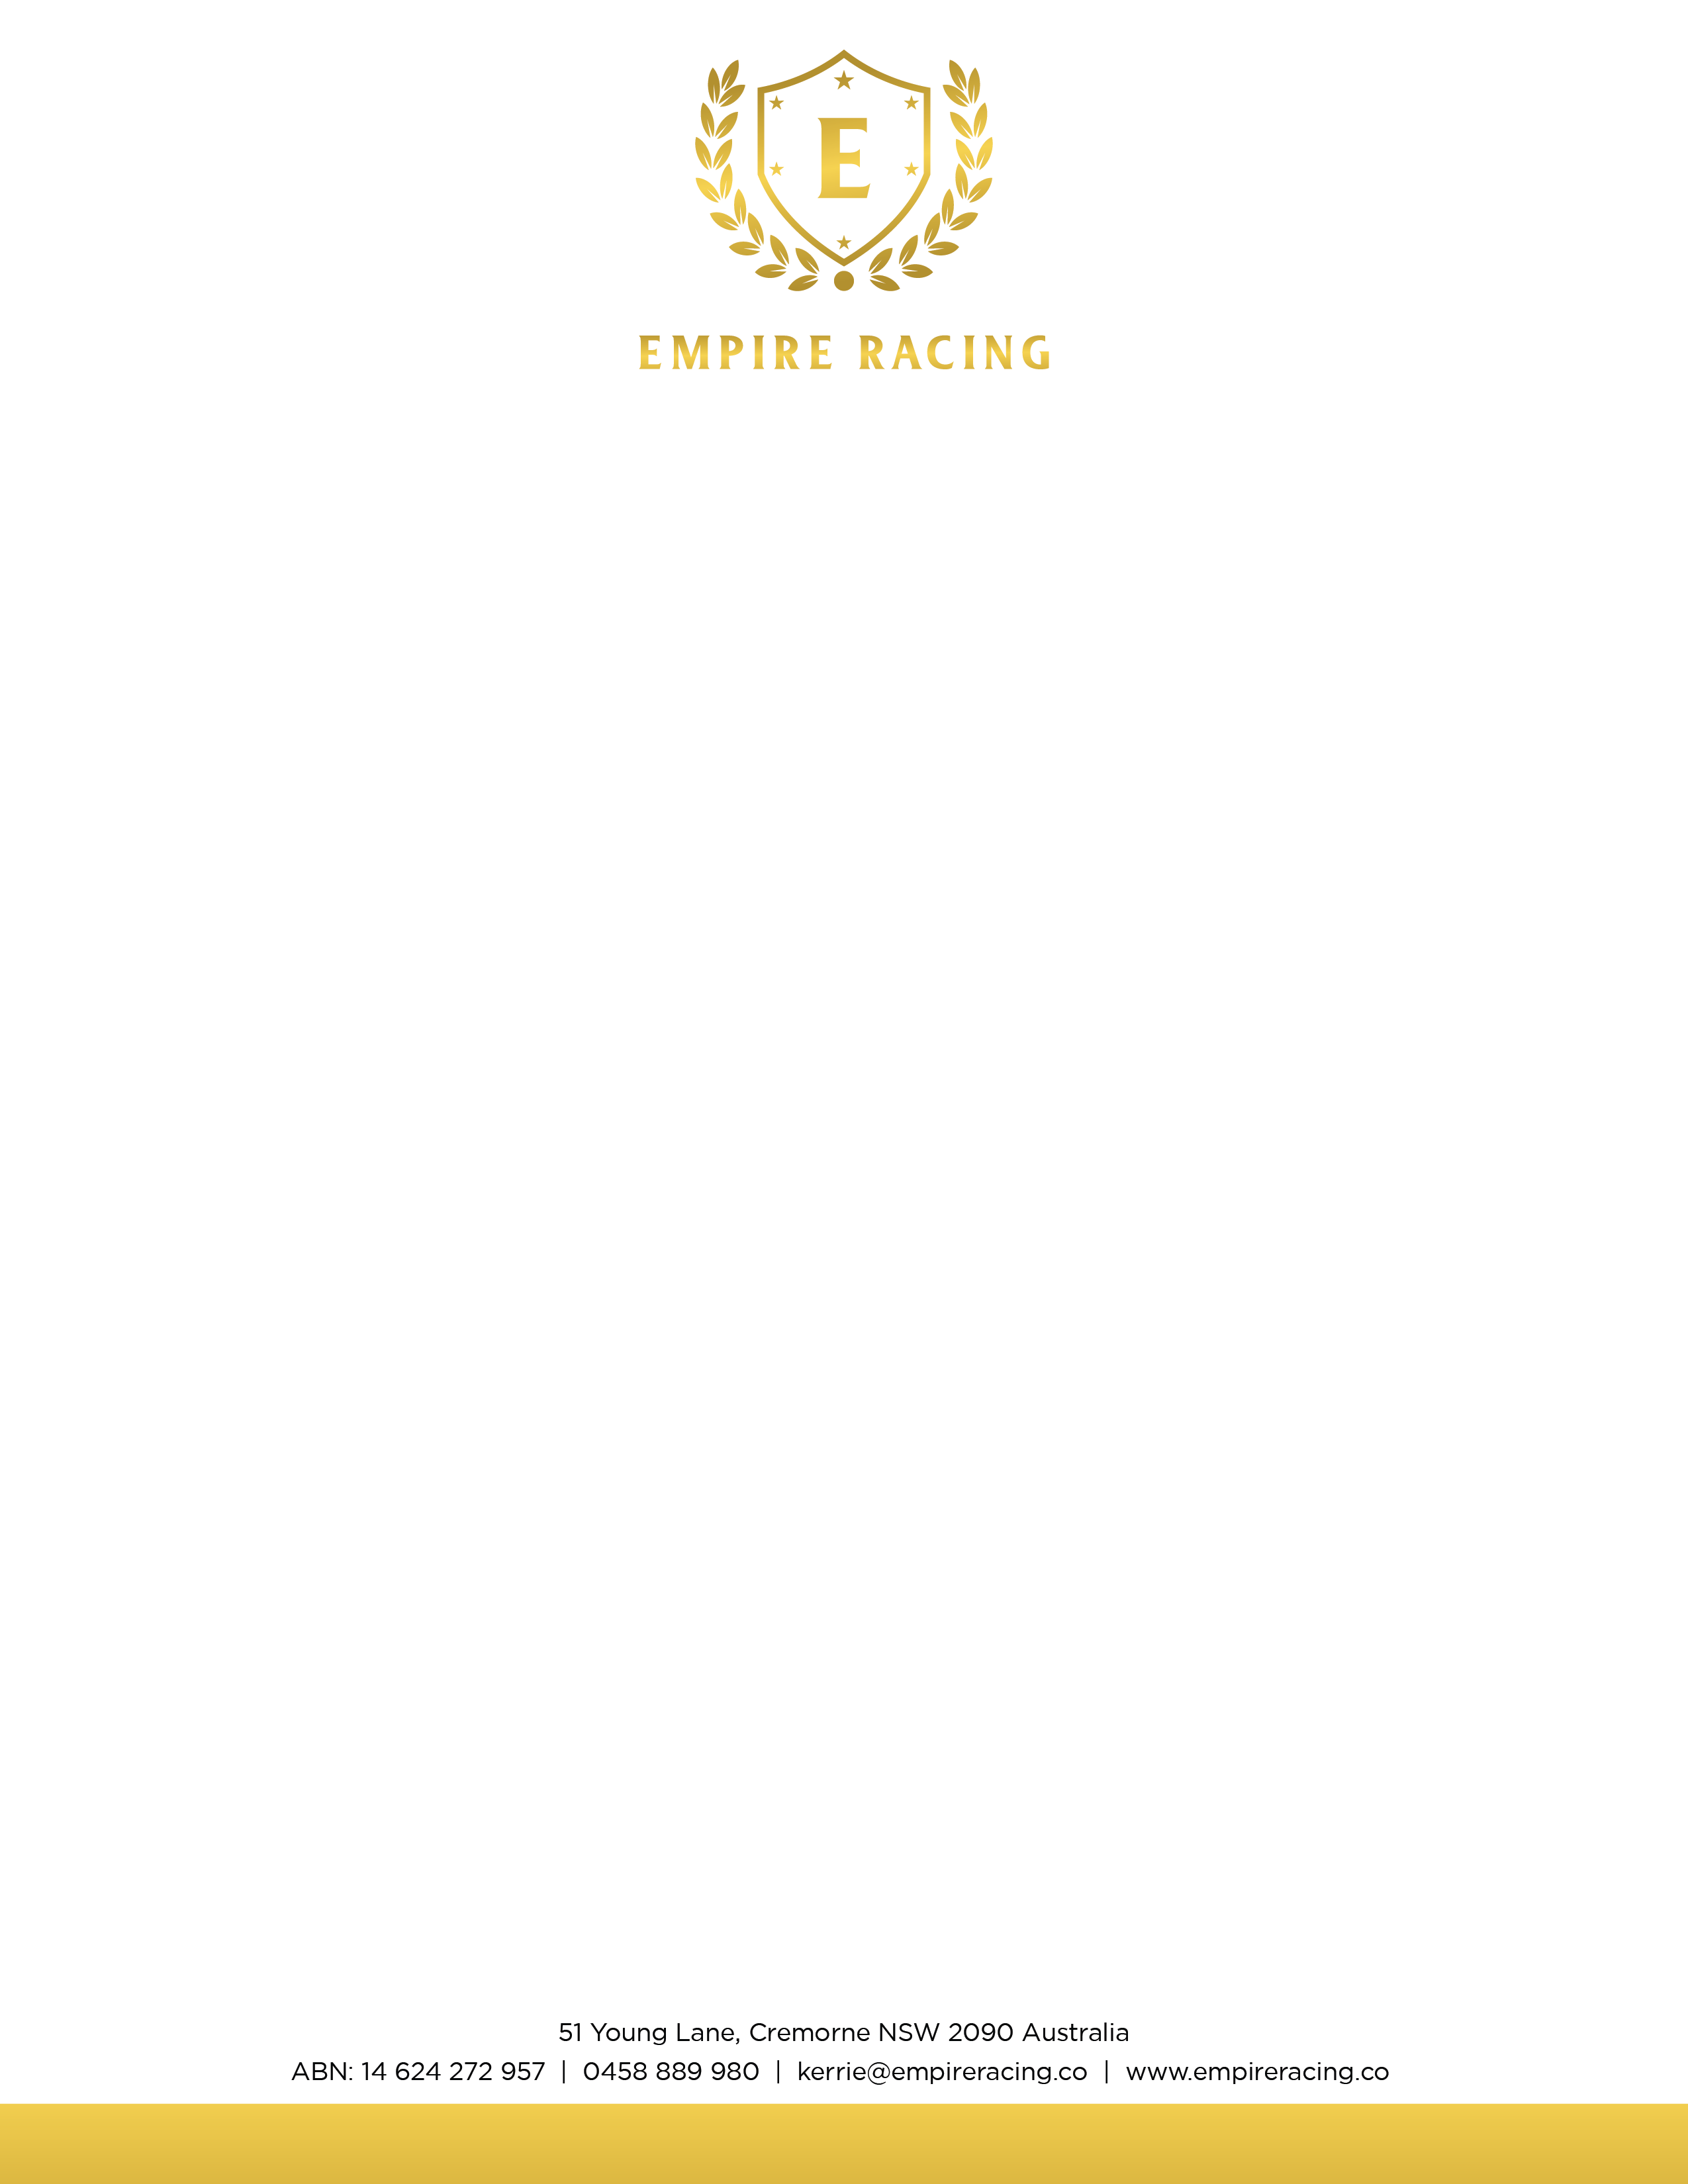 Empire Racing - Brand guide / Letterhead / Business card